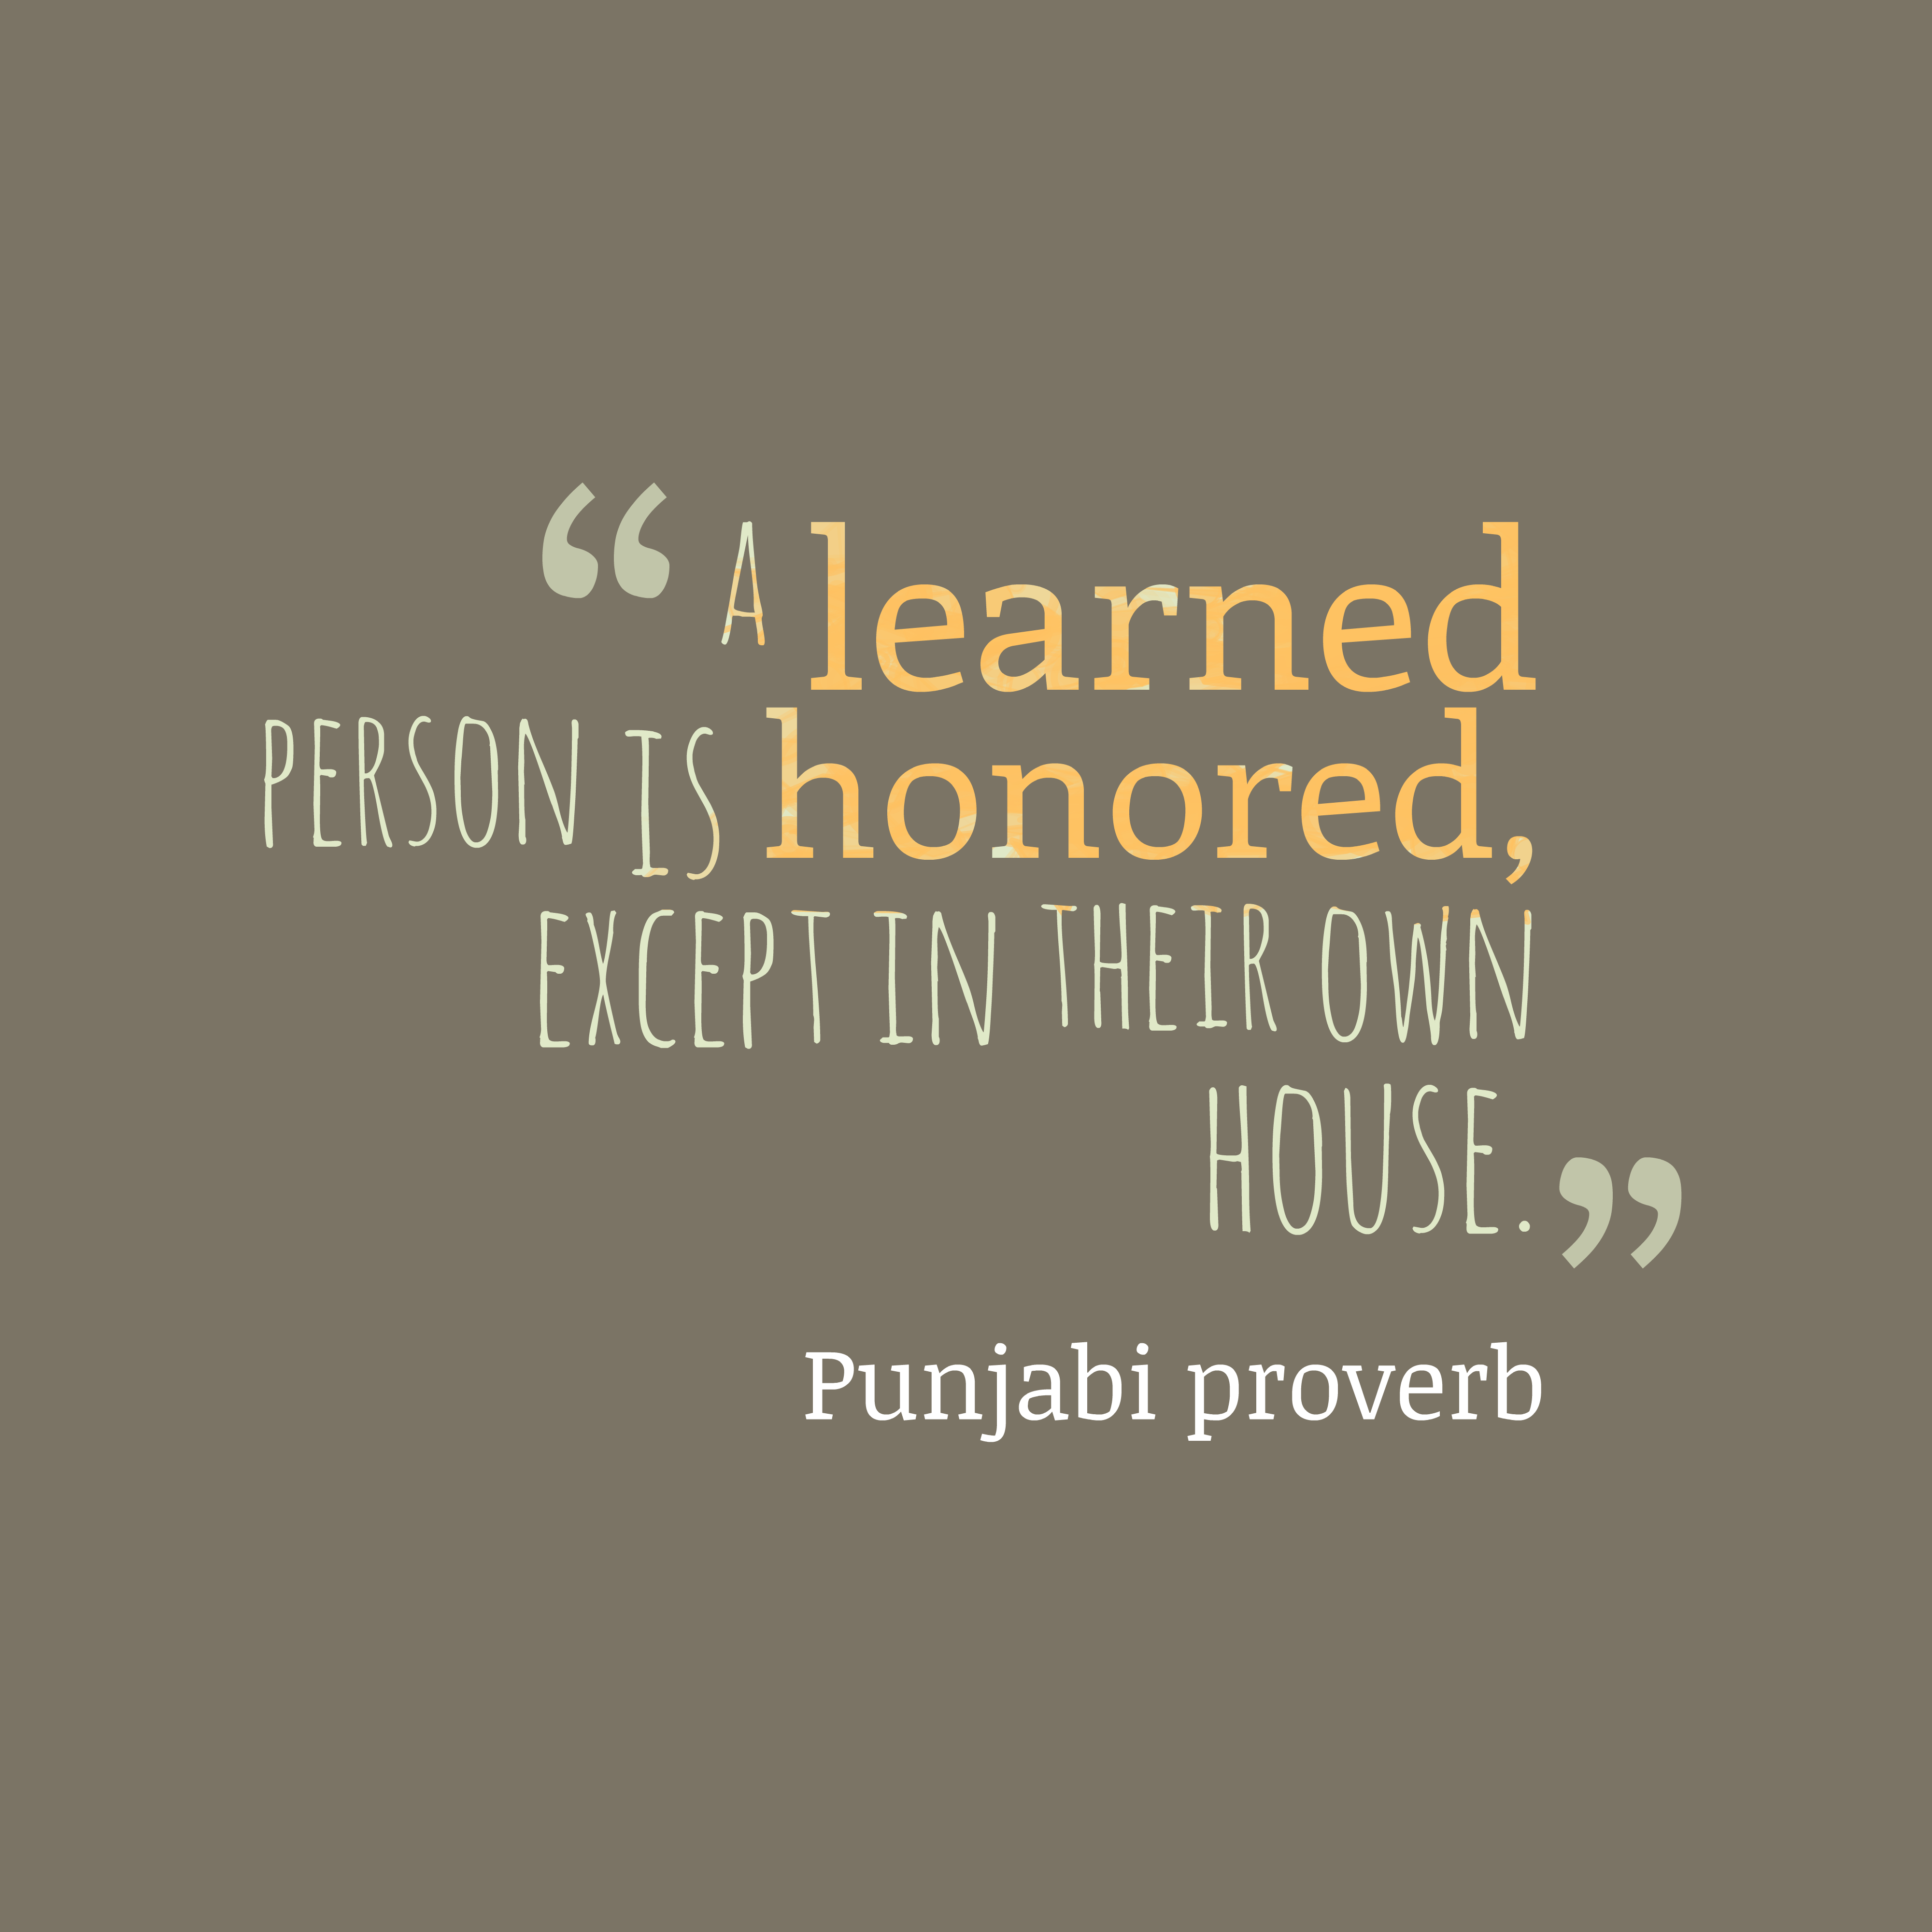 Quotes image of a learned person is honored, except in their own house.